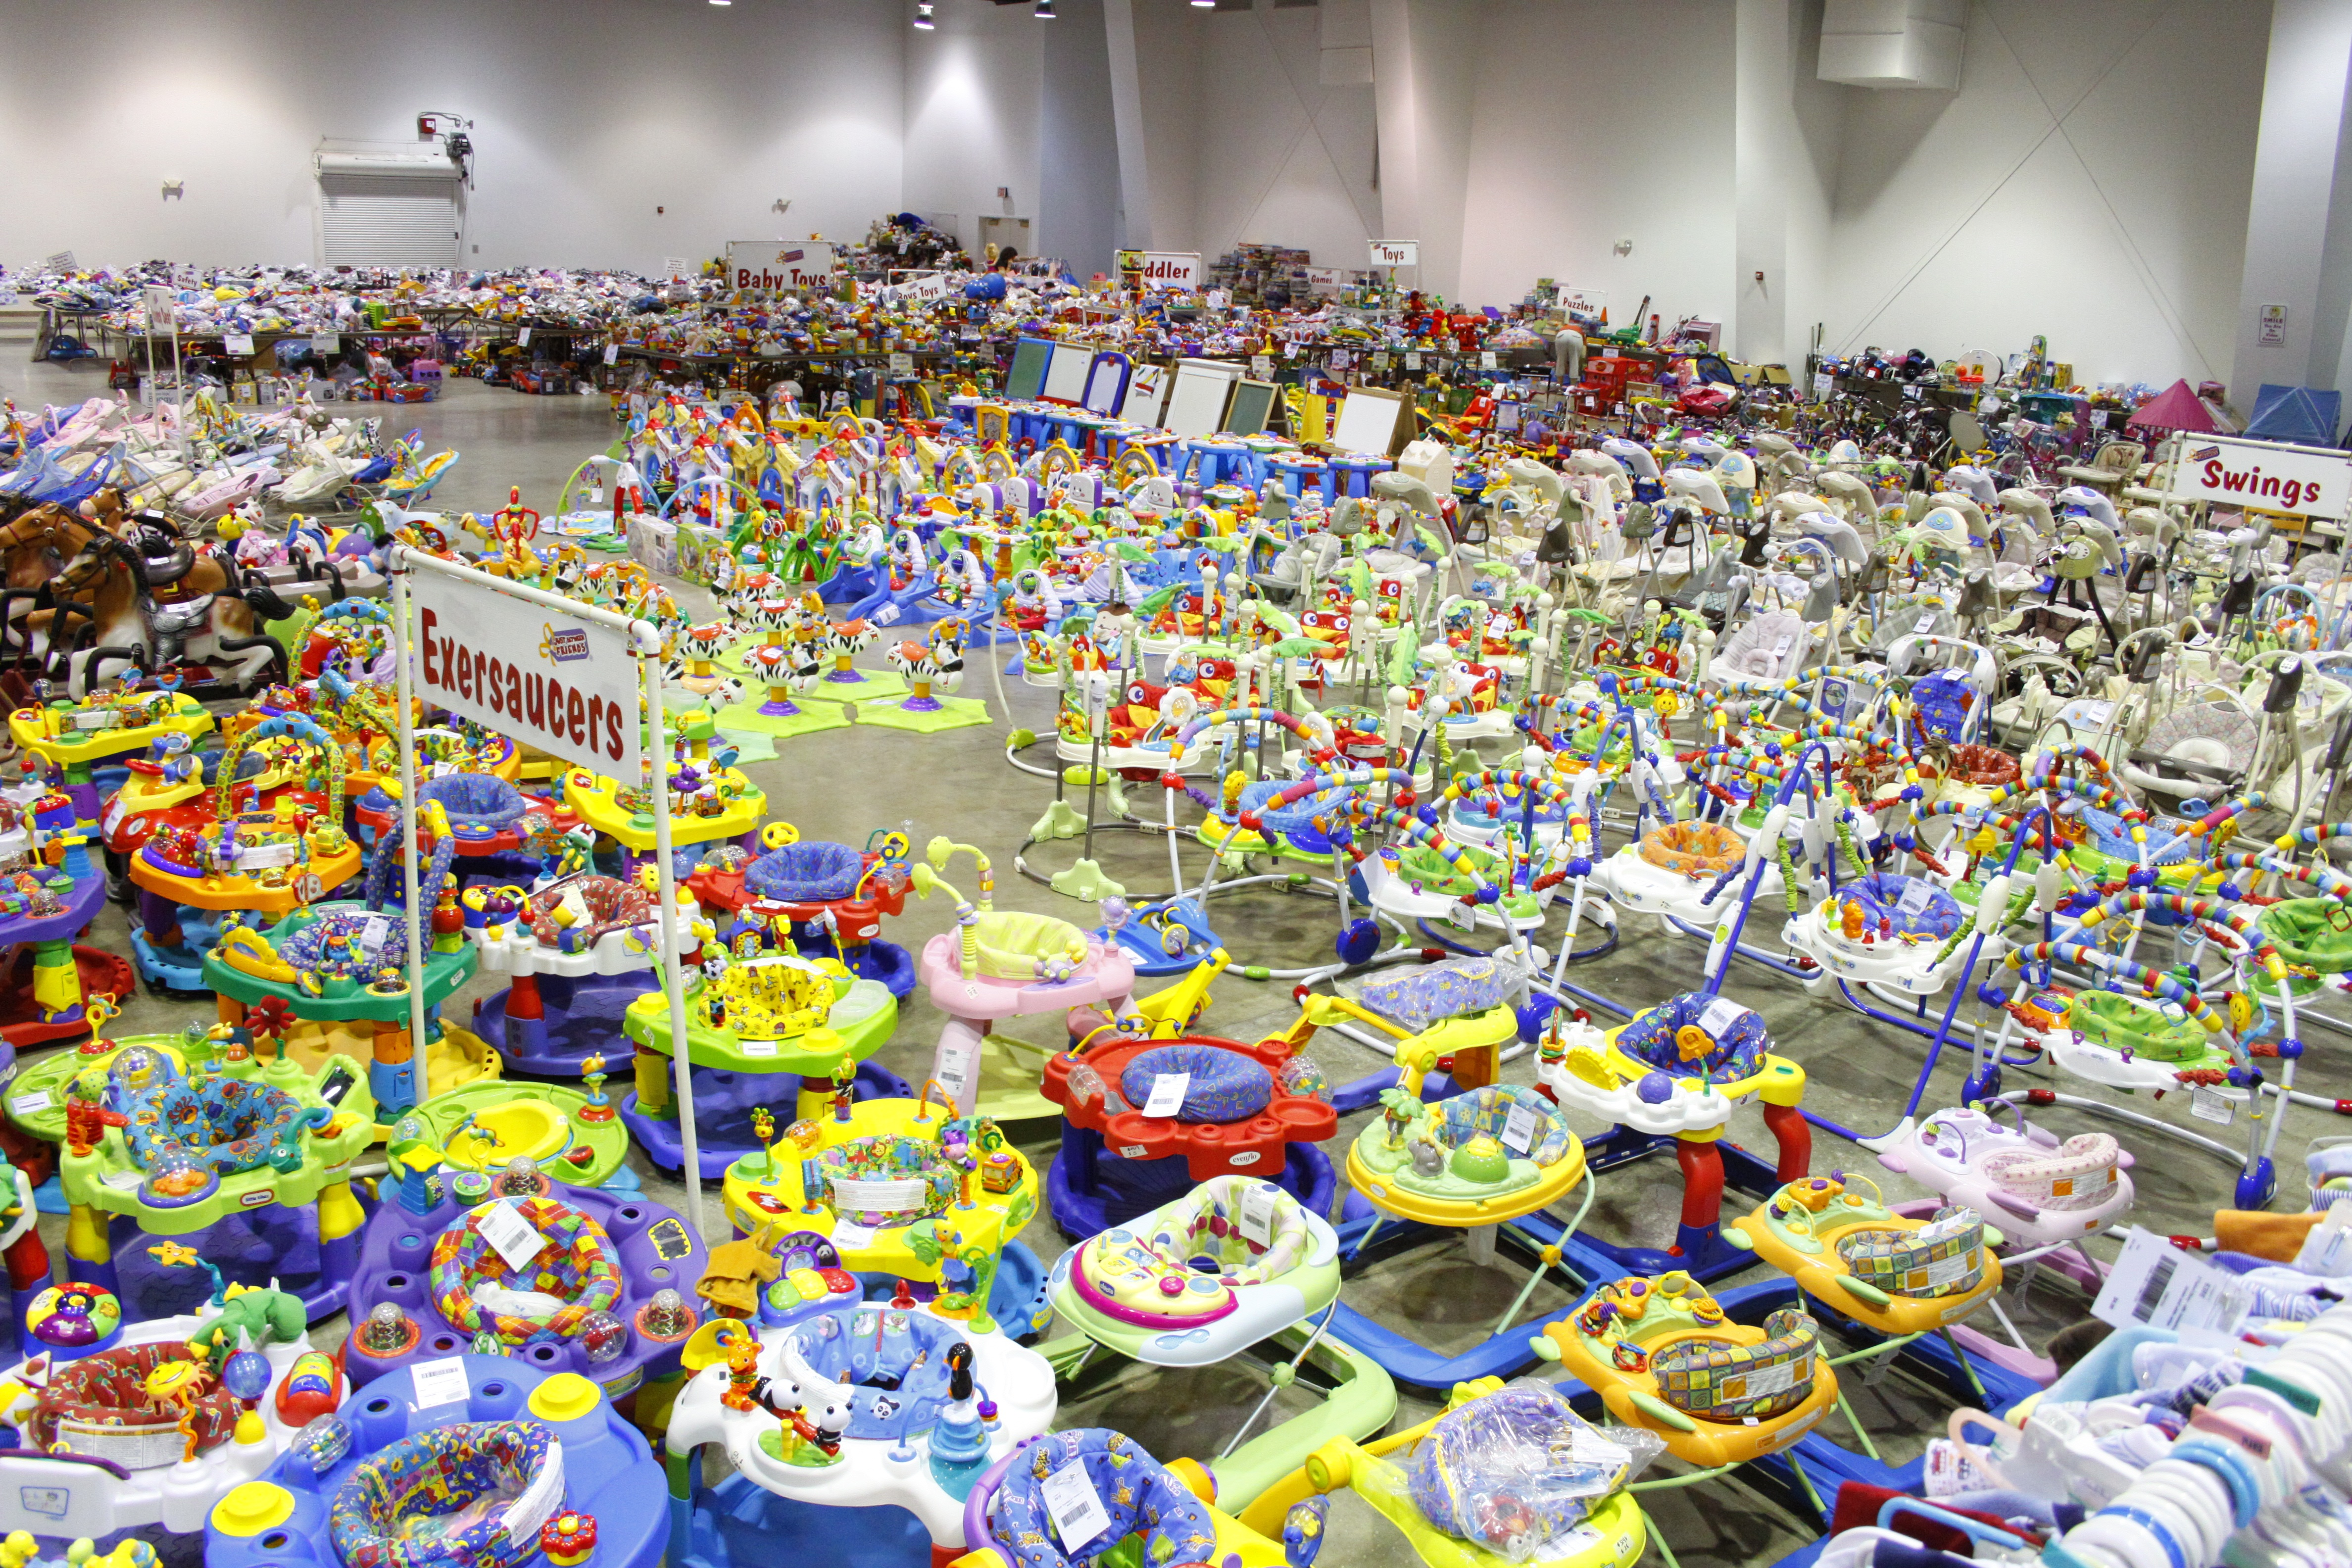 Just Between Friends brings huge children/maternity consignment event to Mesquite Rodeo grounds